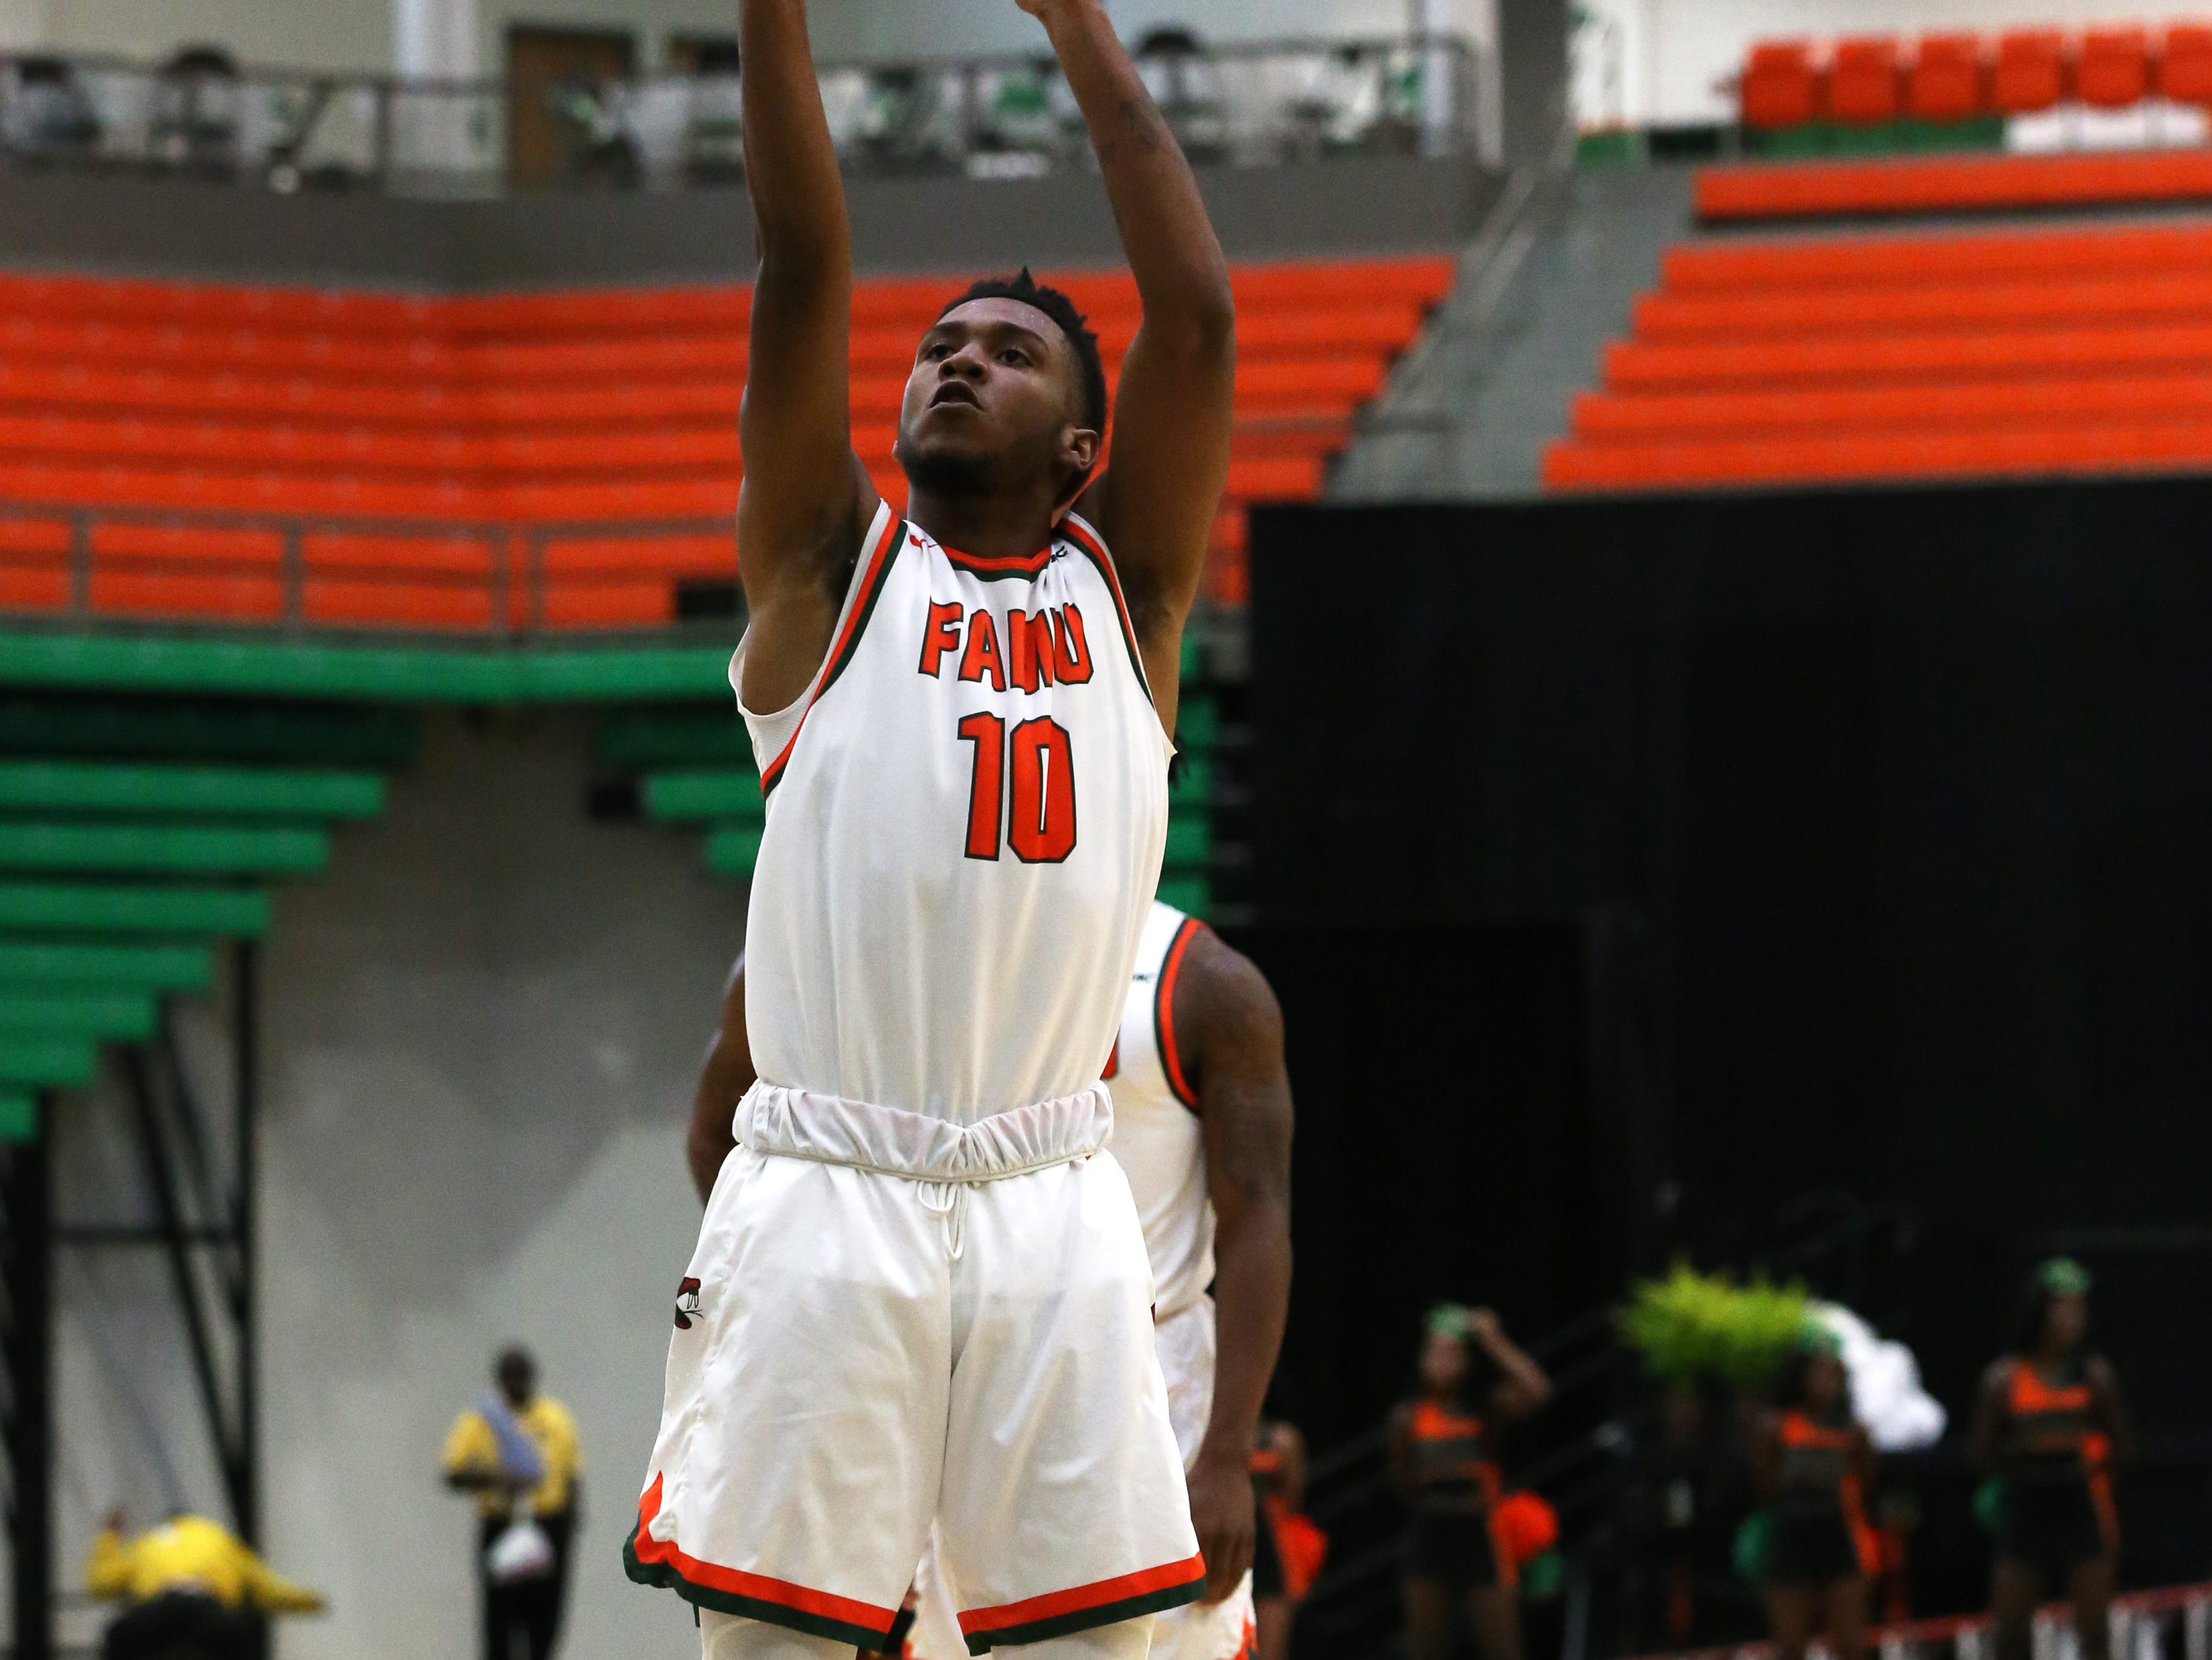 Florida A&M Rattlers guard Richard Anderson (10) shoots a free throw as the FAMU Rattlers take on the Tuskegee Golden Tigers in their first home game of the season in the Lawson Center, Saturday, Nov. 10, 2018.